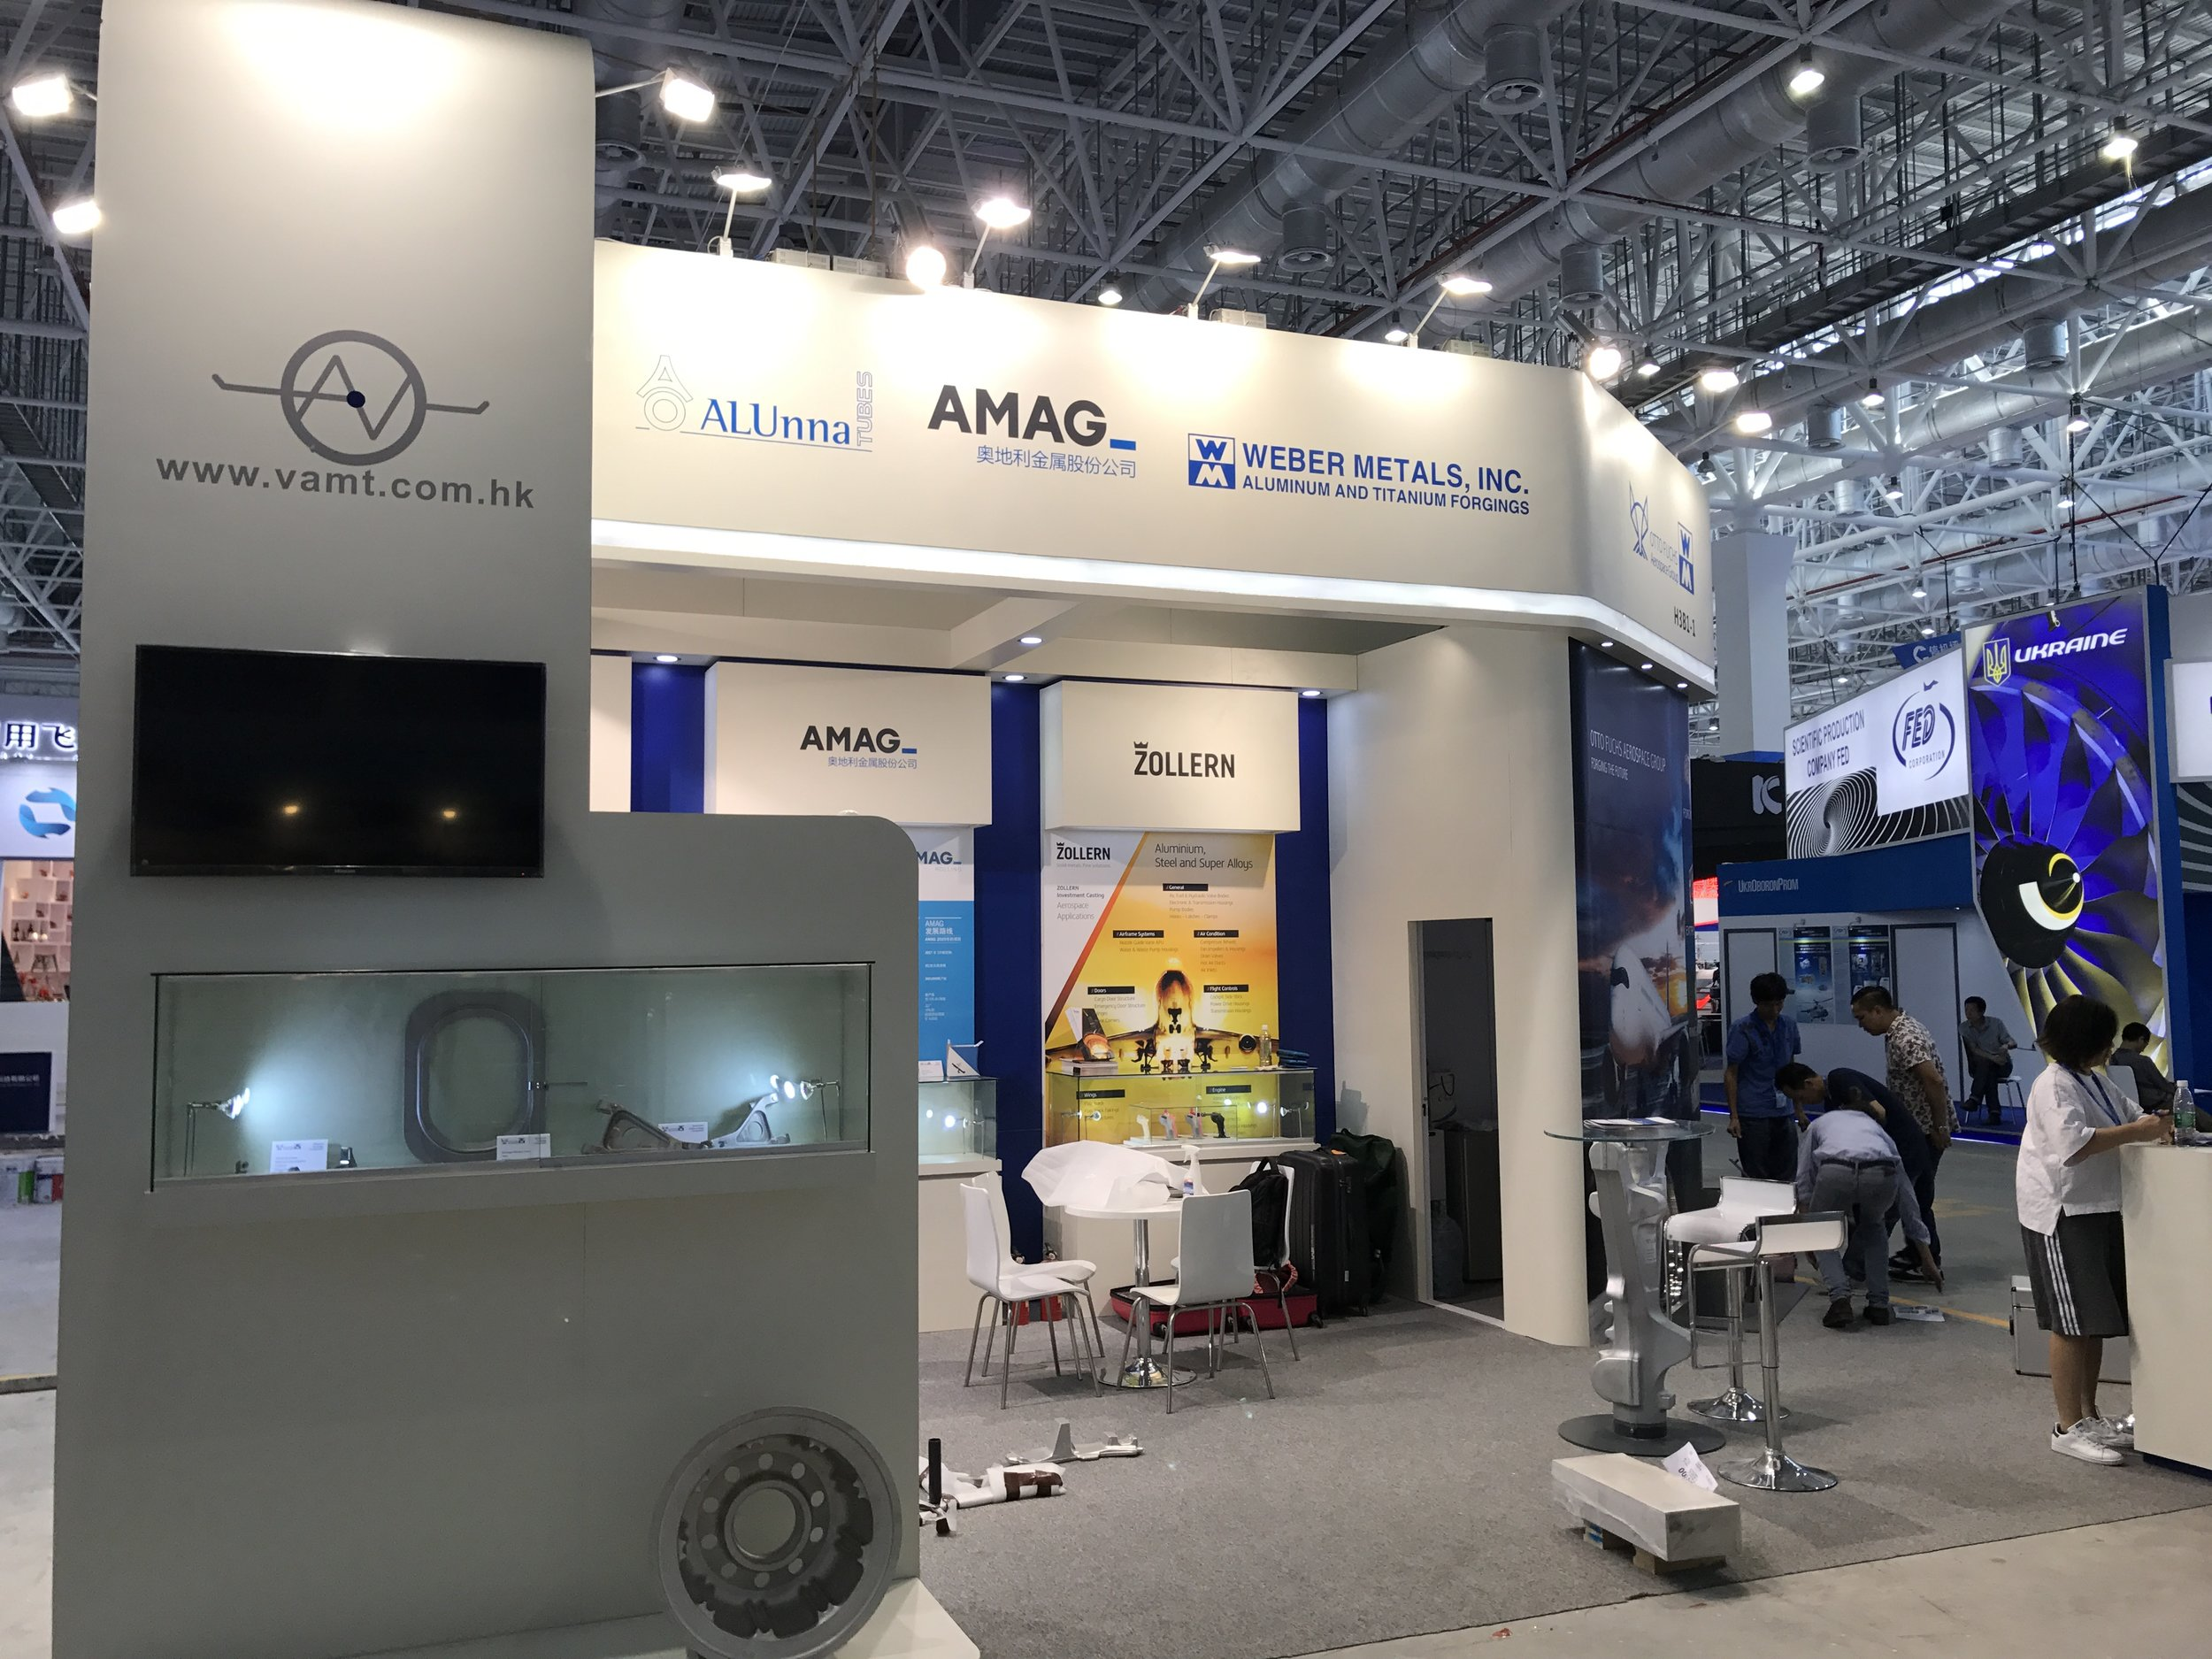 @vamt find: AMAG, ALUnna, ZOLLERN and the Otto Fuchs Aerospace Group (Otto Fuchs & Weber Metals)